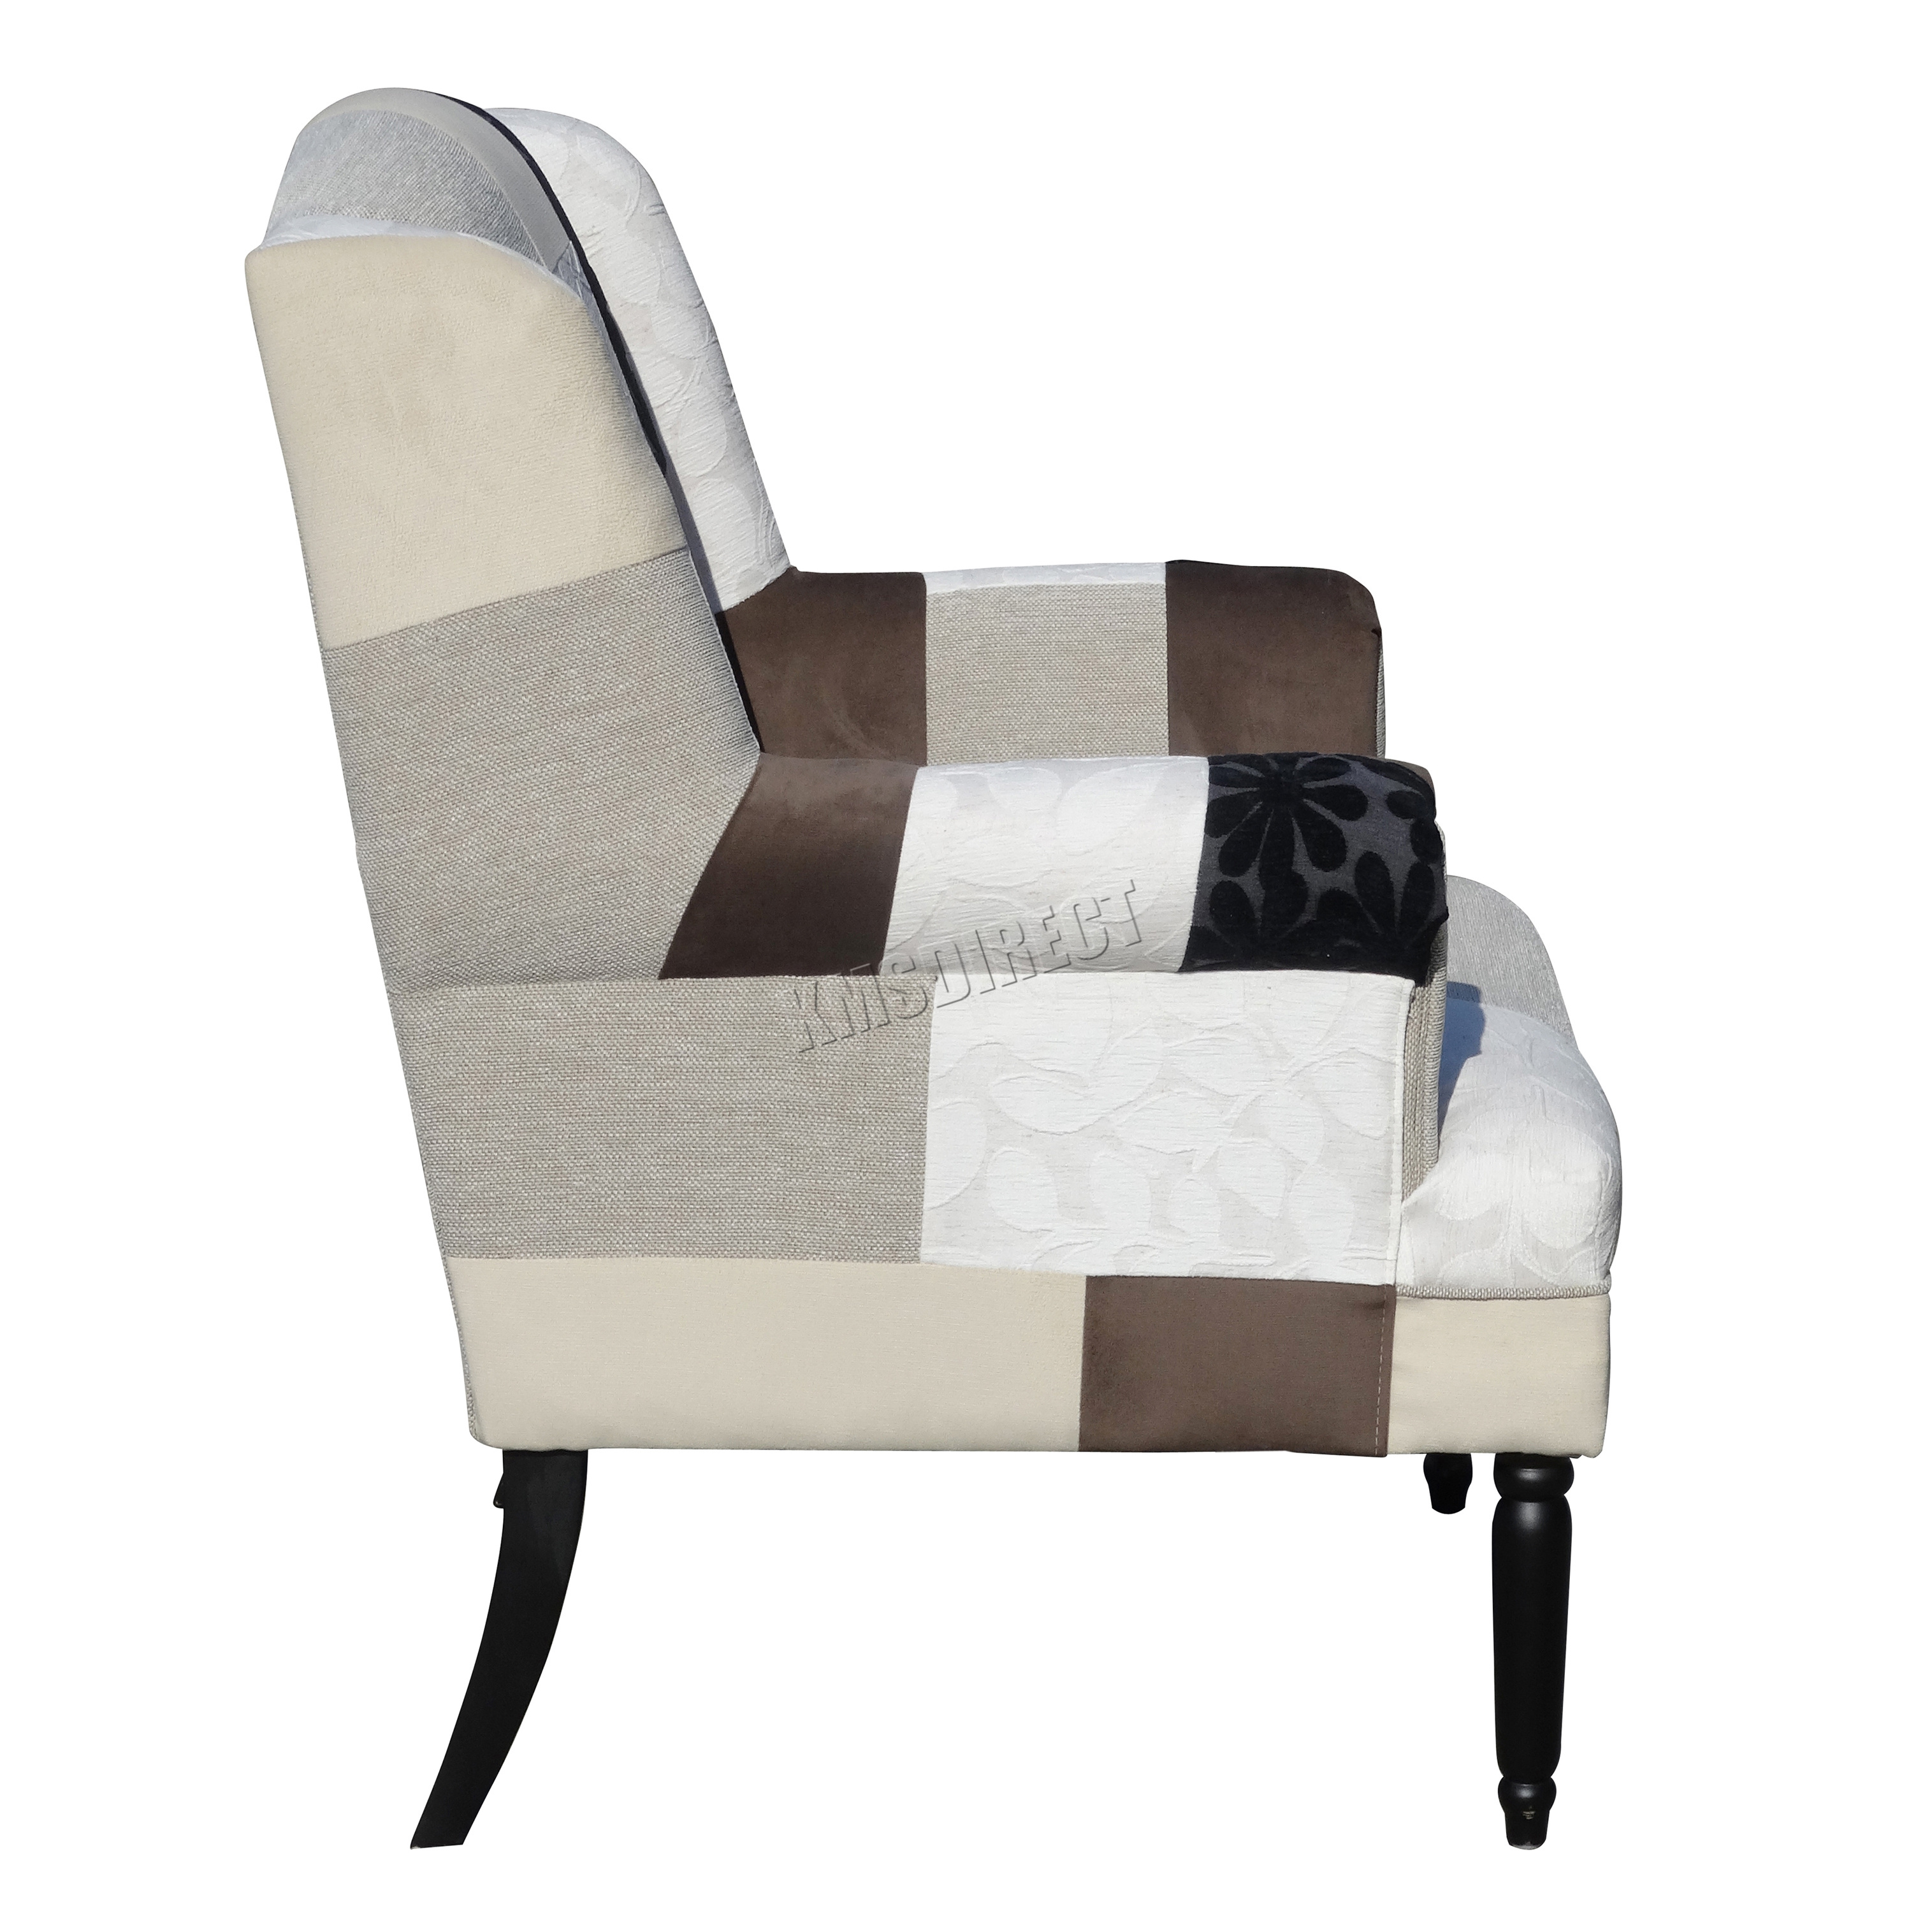 FoxHunter Patchwork Chair Fabric Vintage Armchair Seat Dining Living Room PC0